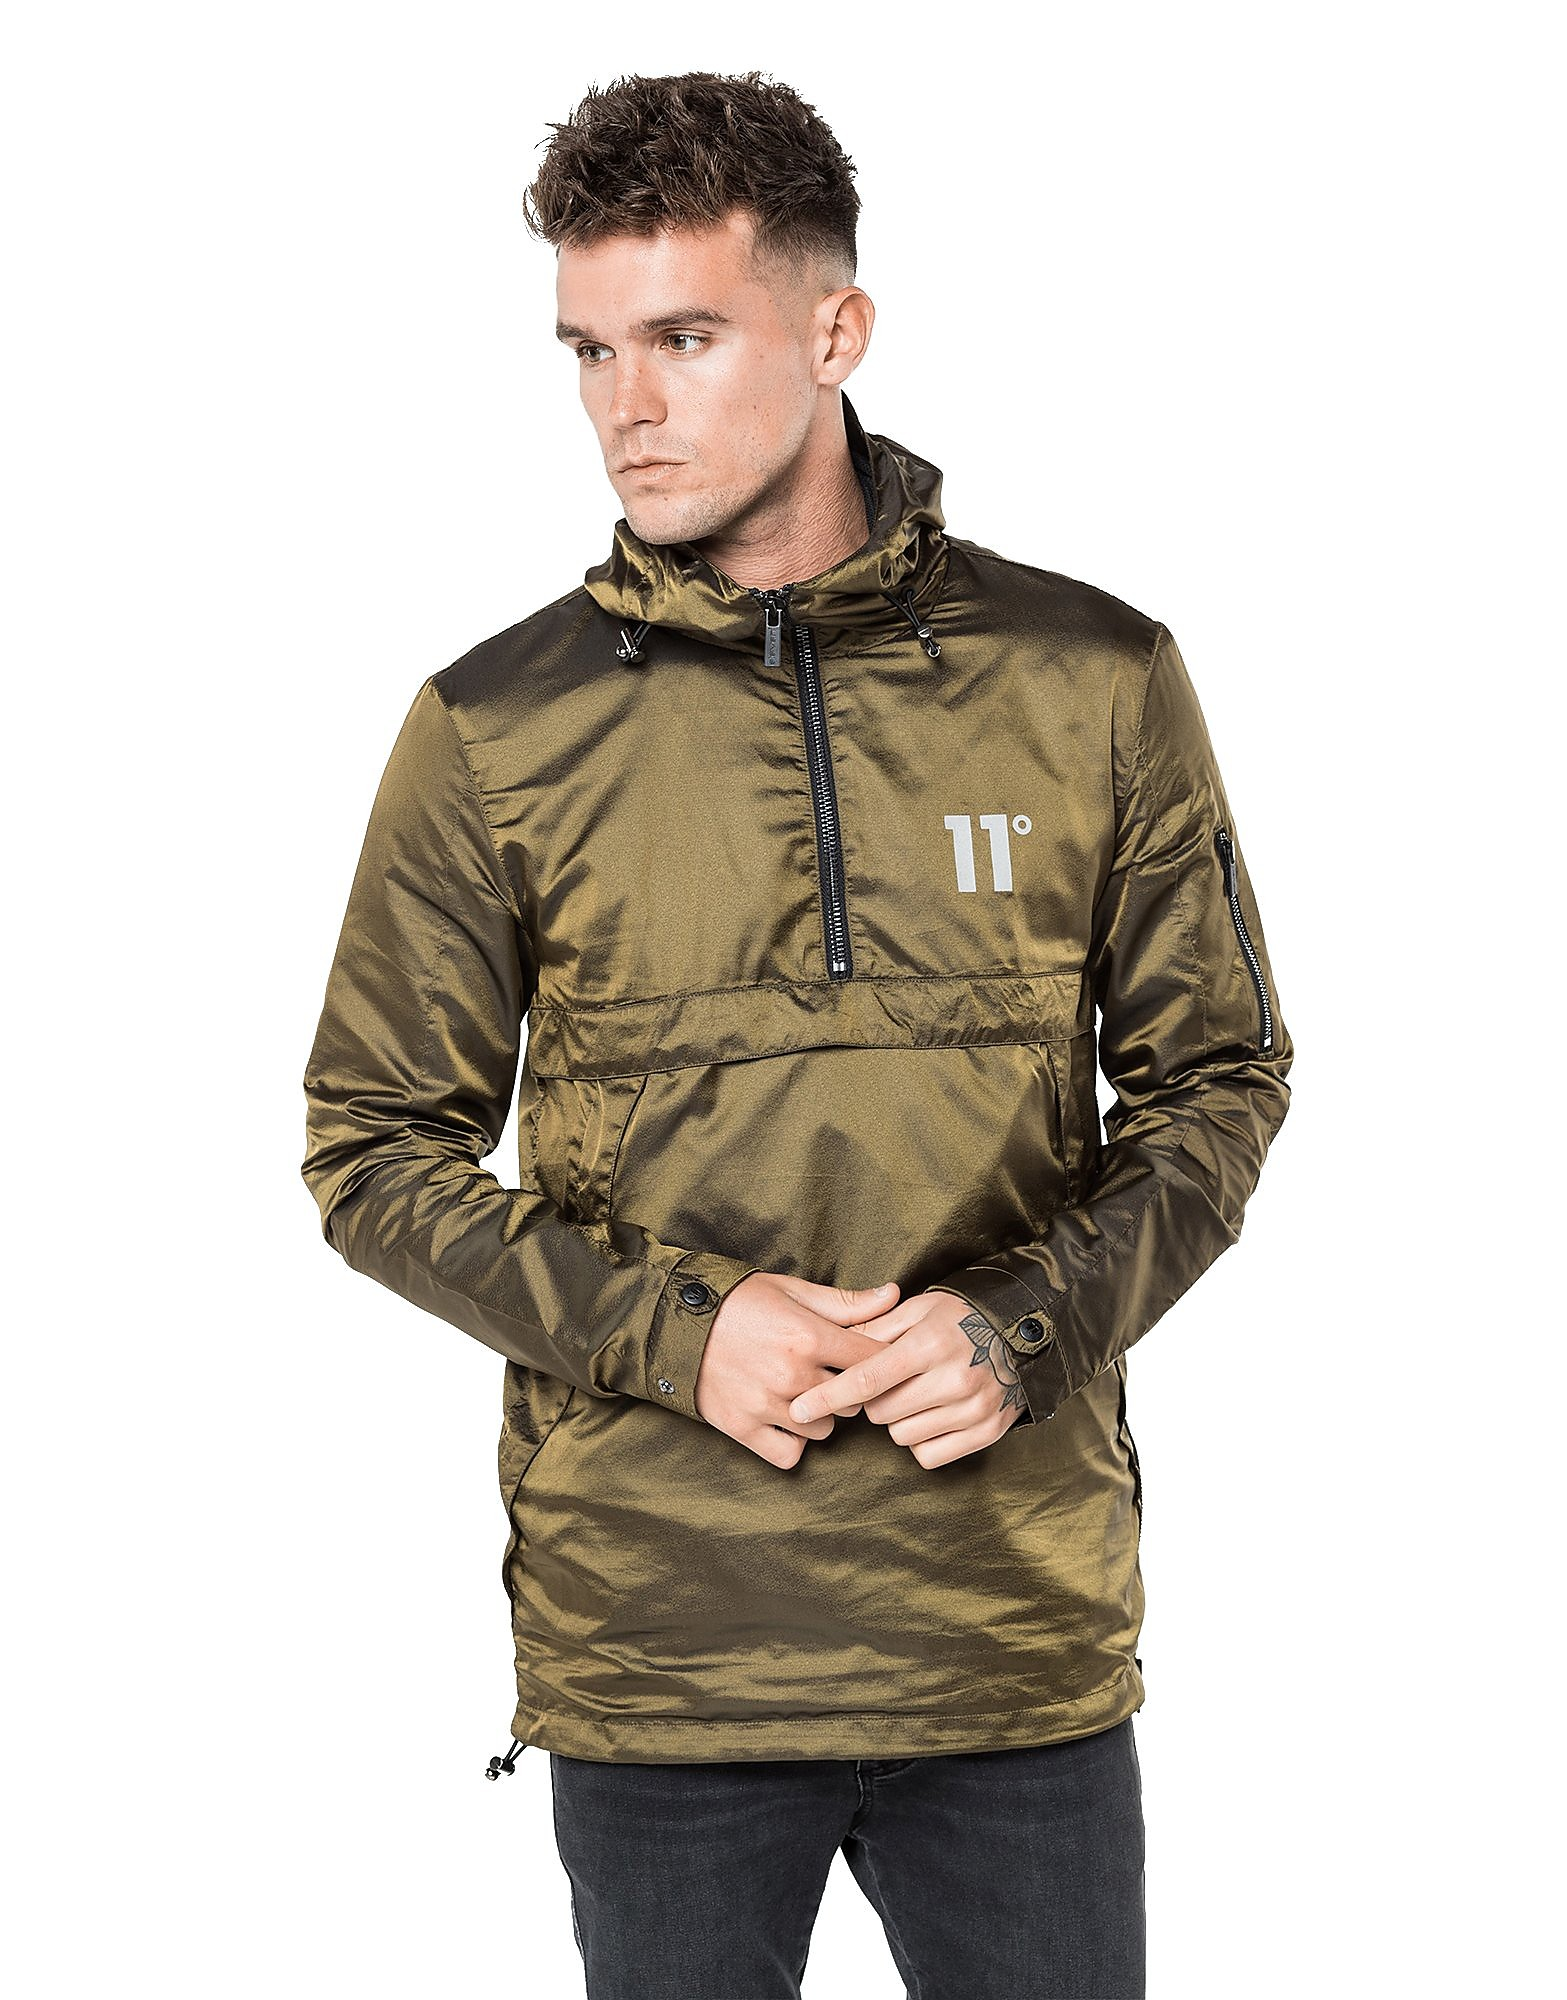 11 Degrees Over the Head Jacket